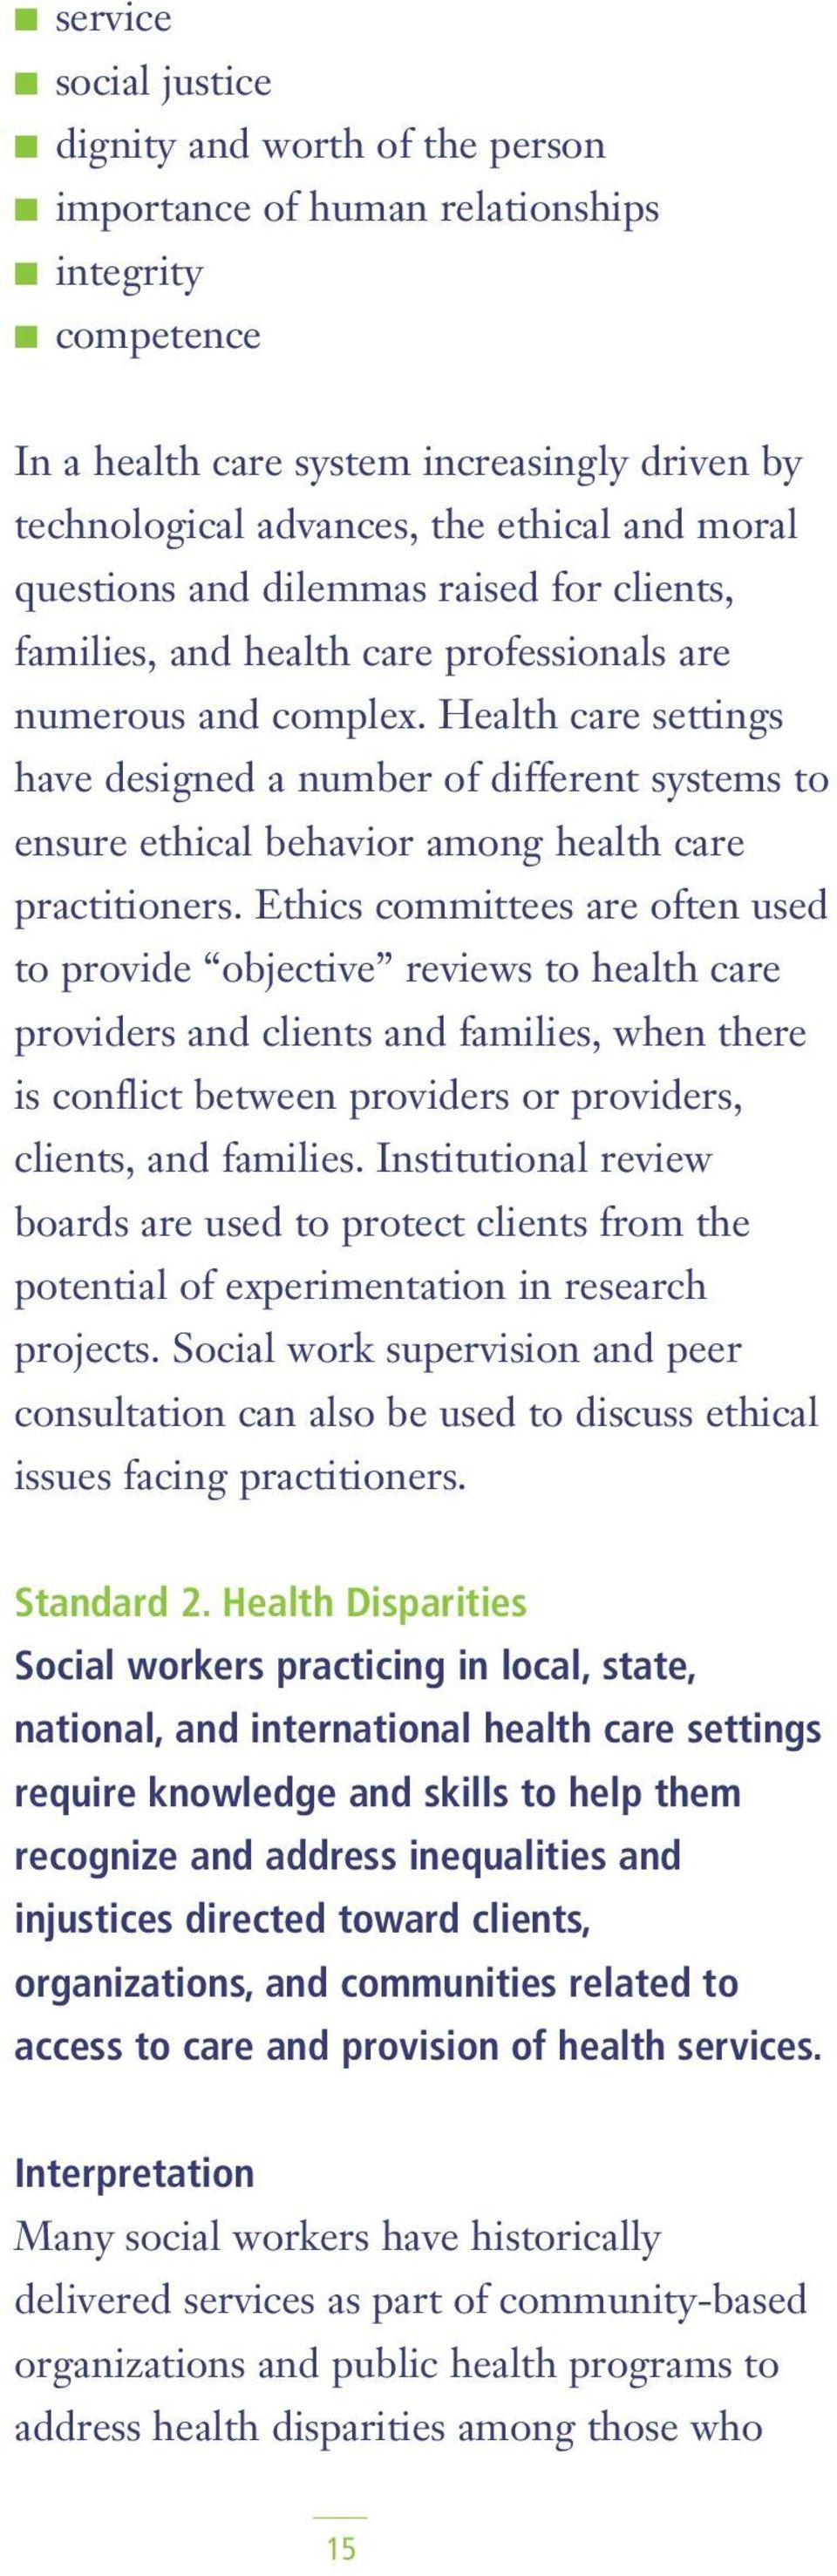 Health care settings have designed a number of different systems to ensure ethical behavior among health care practitioners.